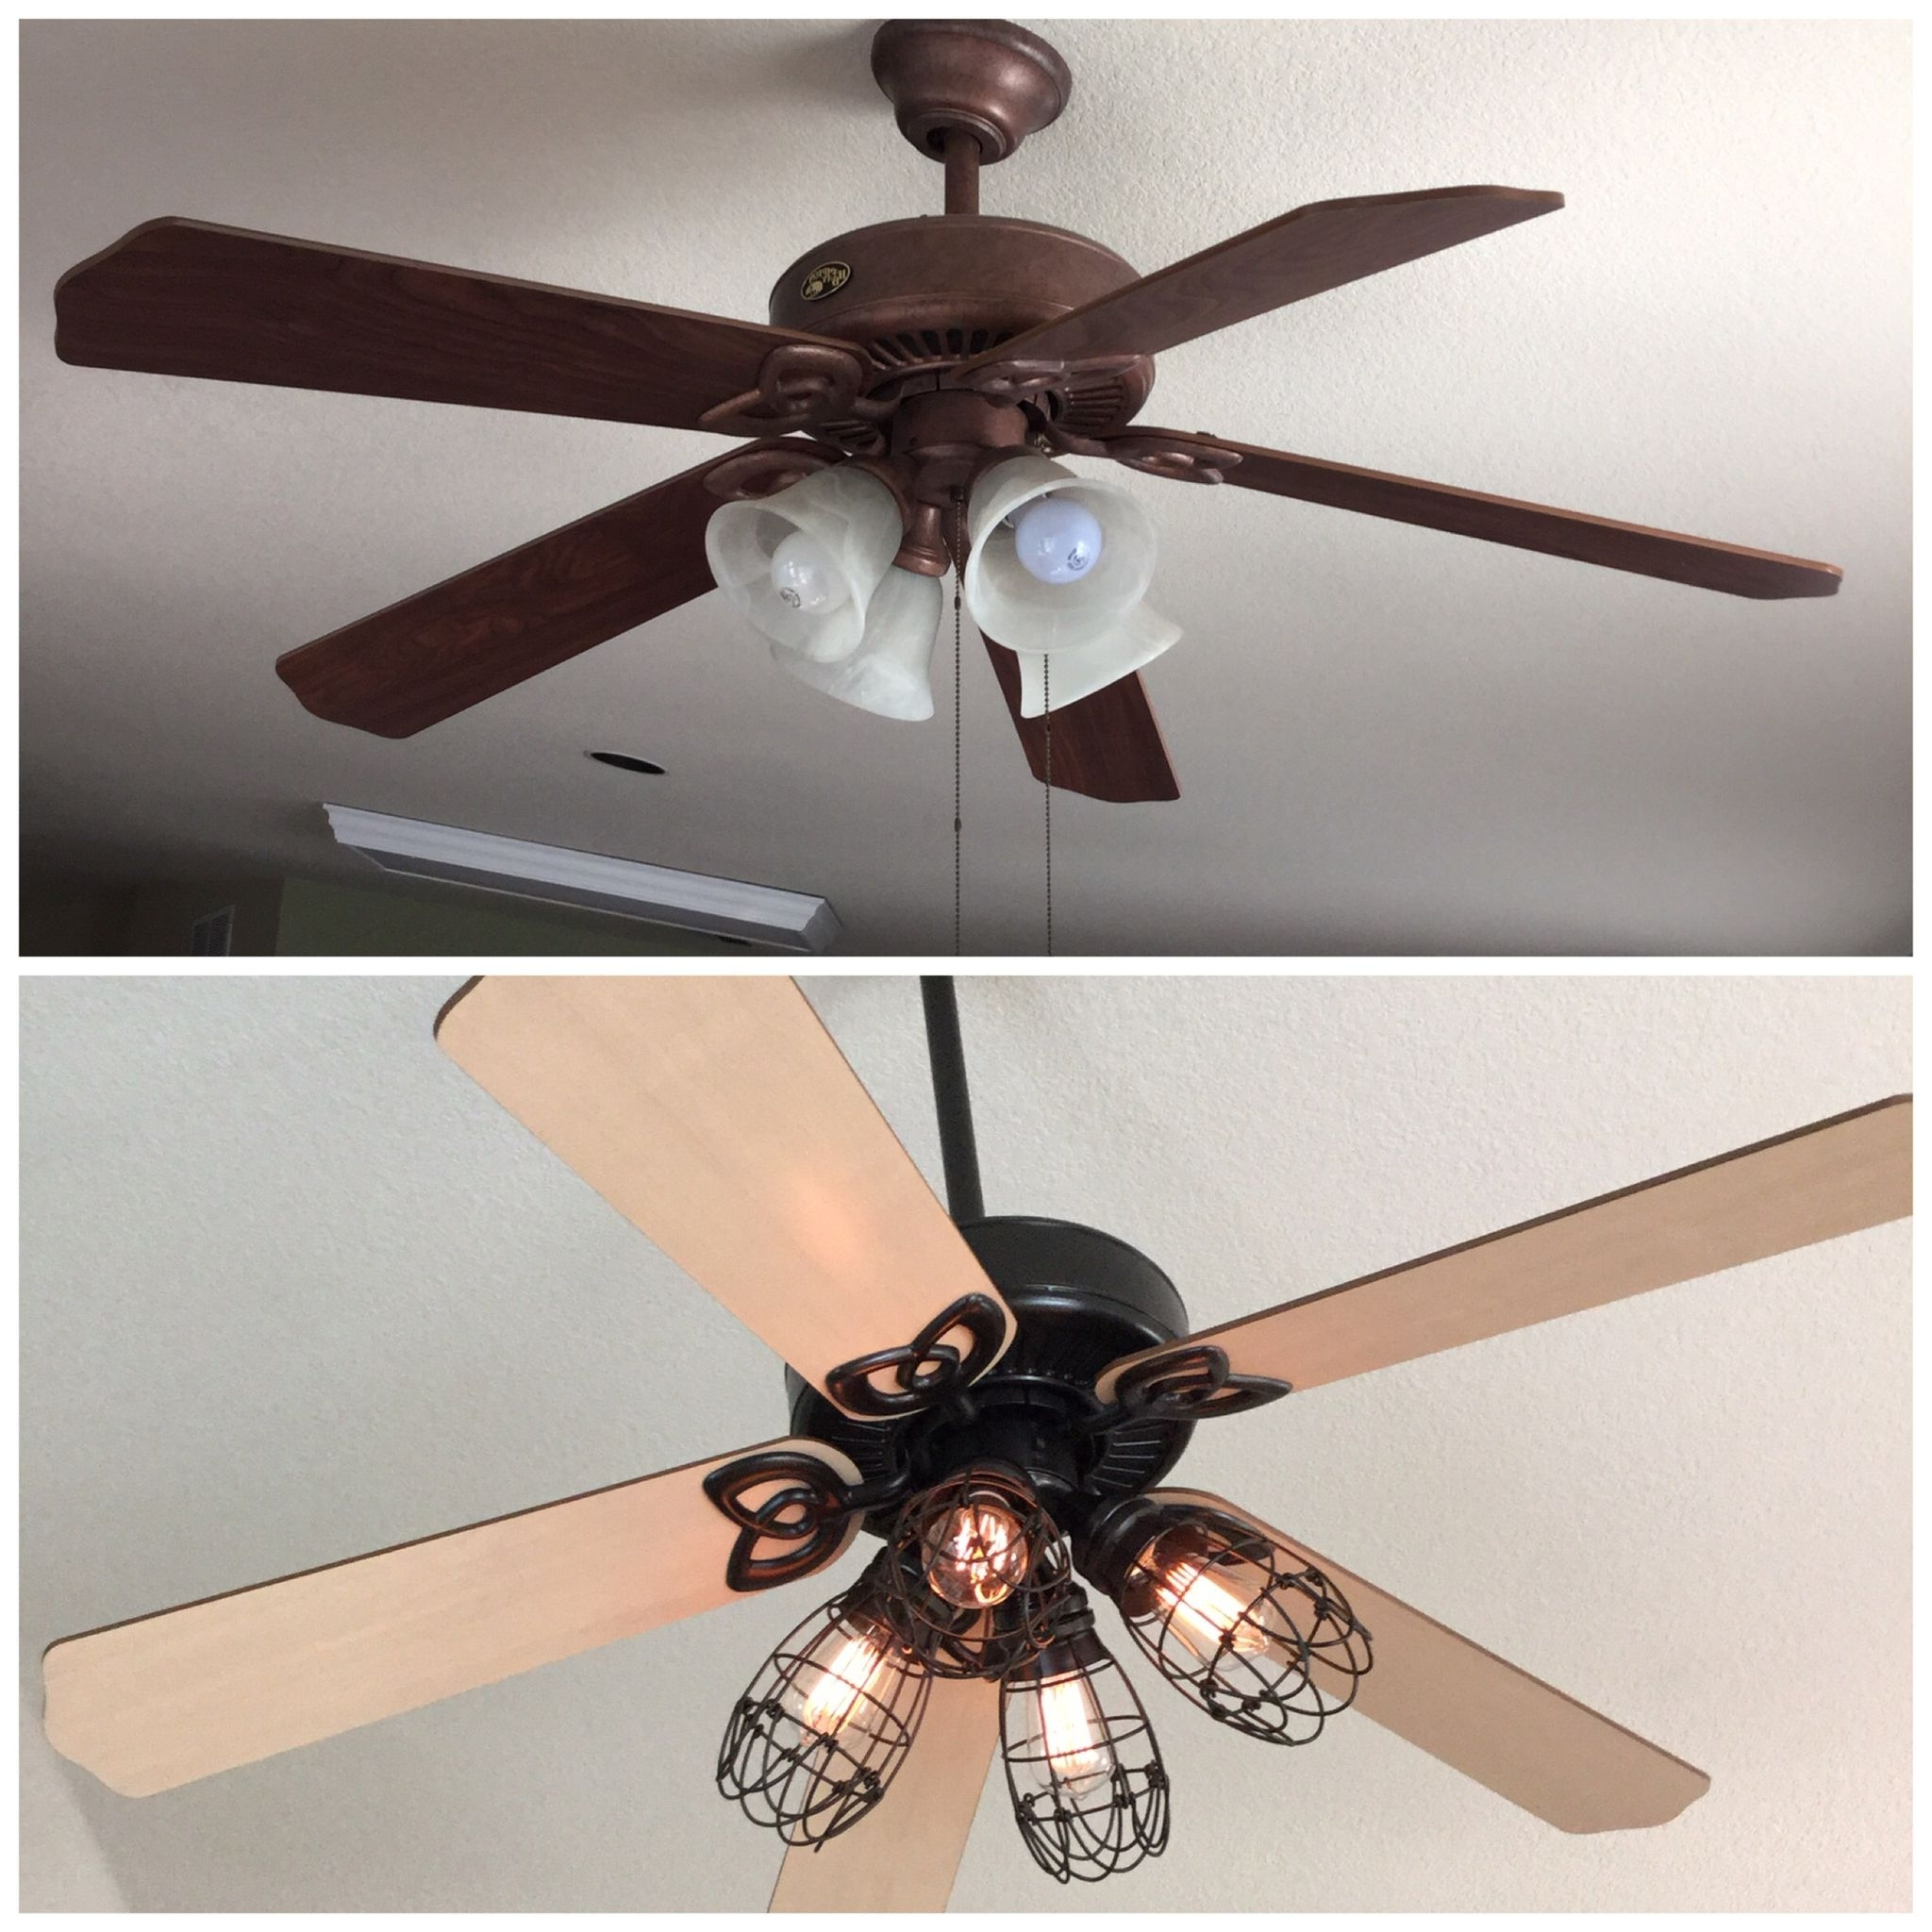 Current Diy Ceiling Fan Makeover: Add Cage Bulb Guards And Edison Bulbs With Outdoor Ceiling Fans With Guard (View 11 of 20)